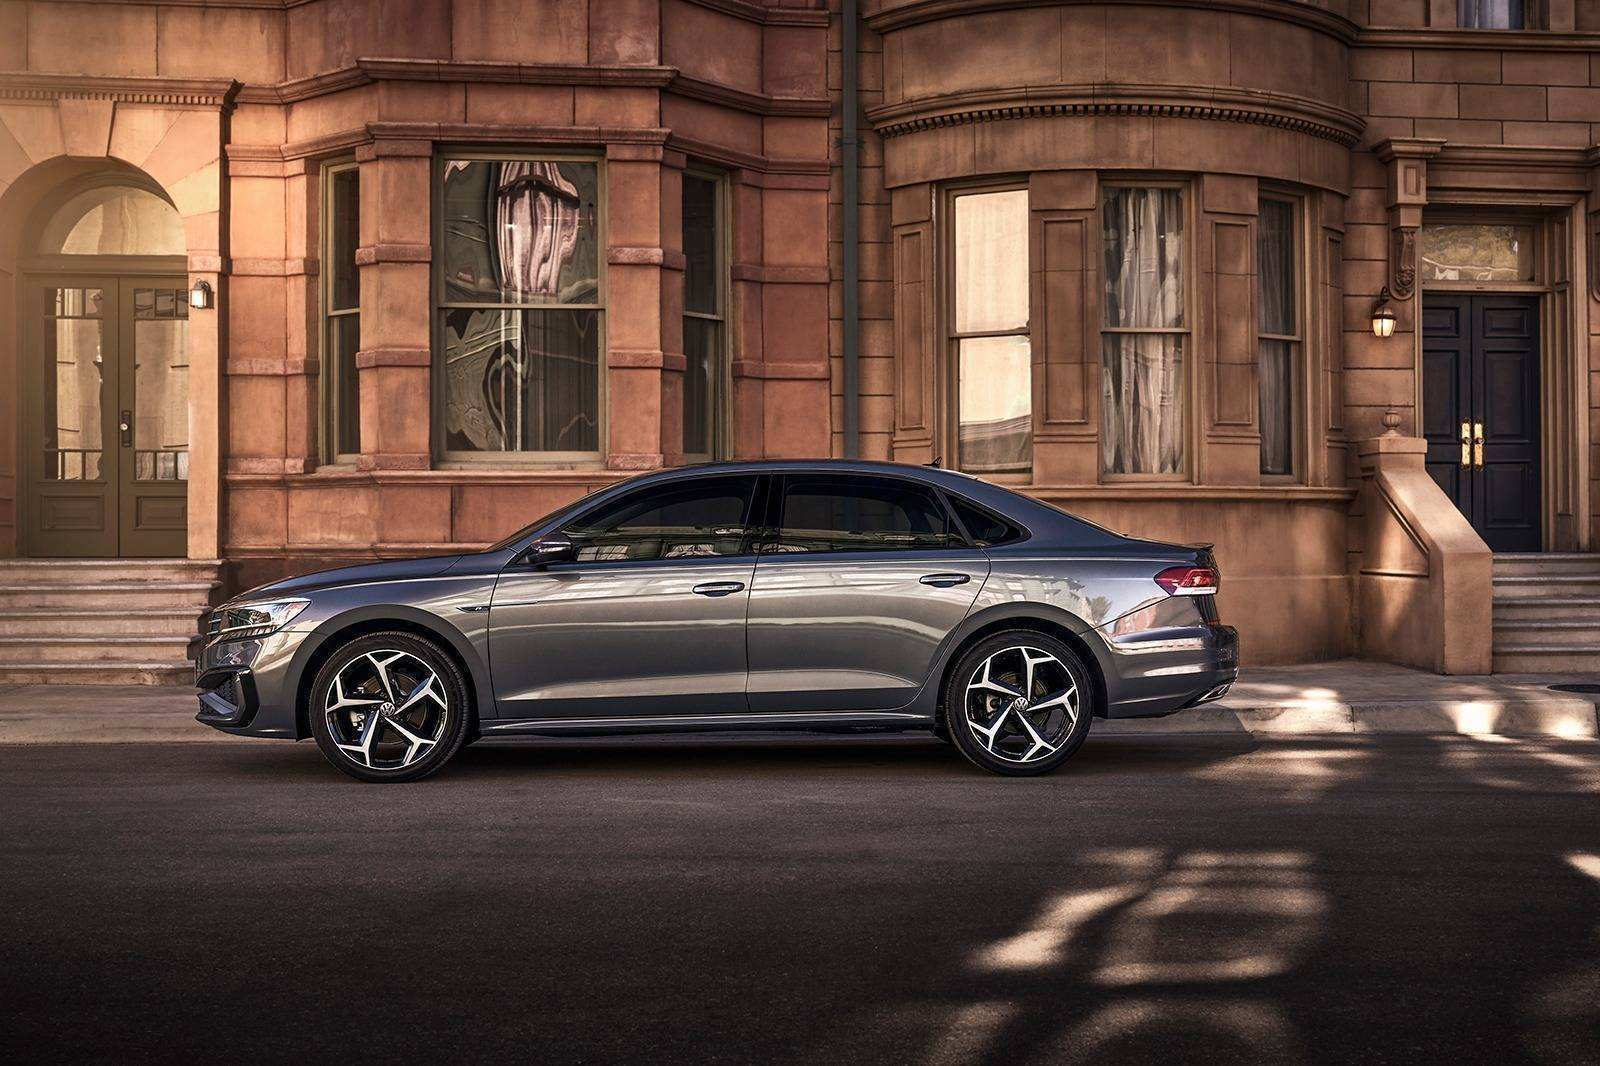 49 All New 2020 Vw Cc New Concept